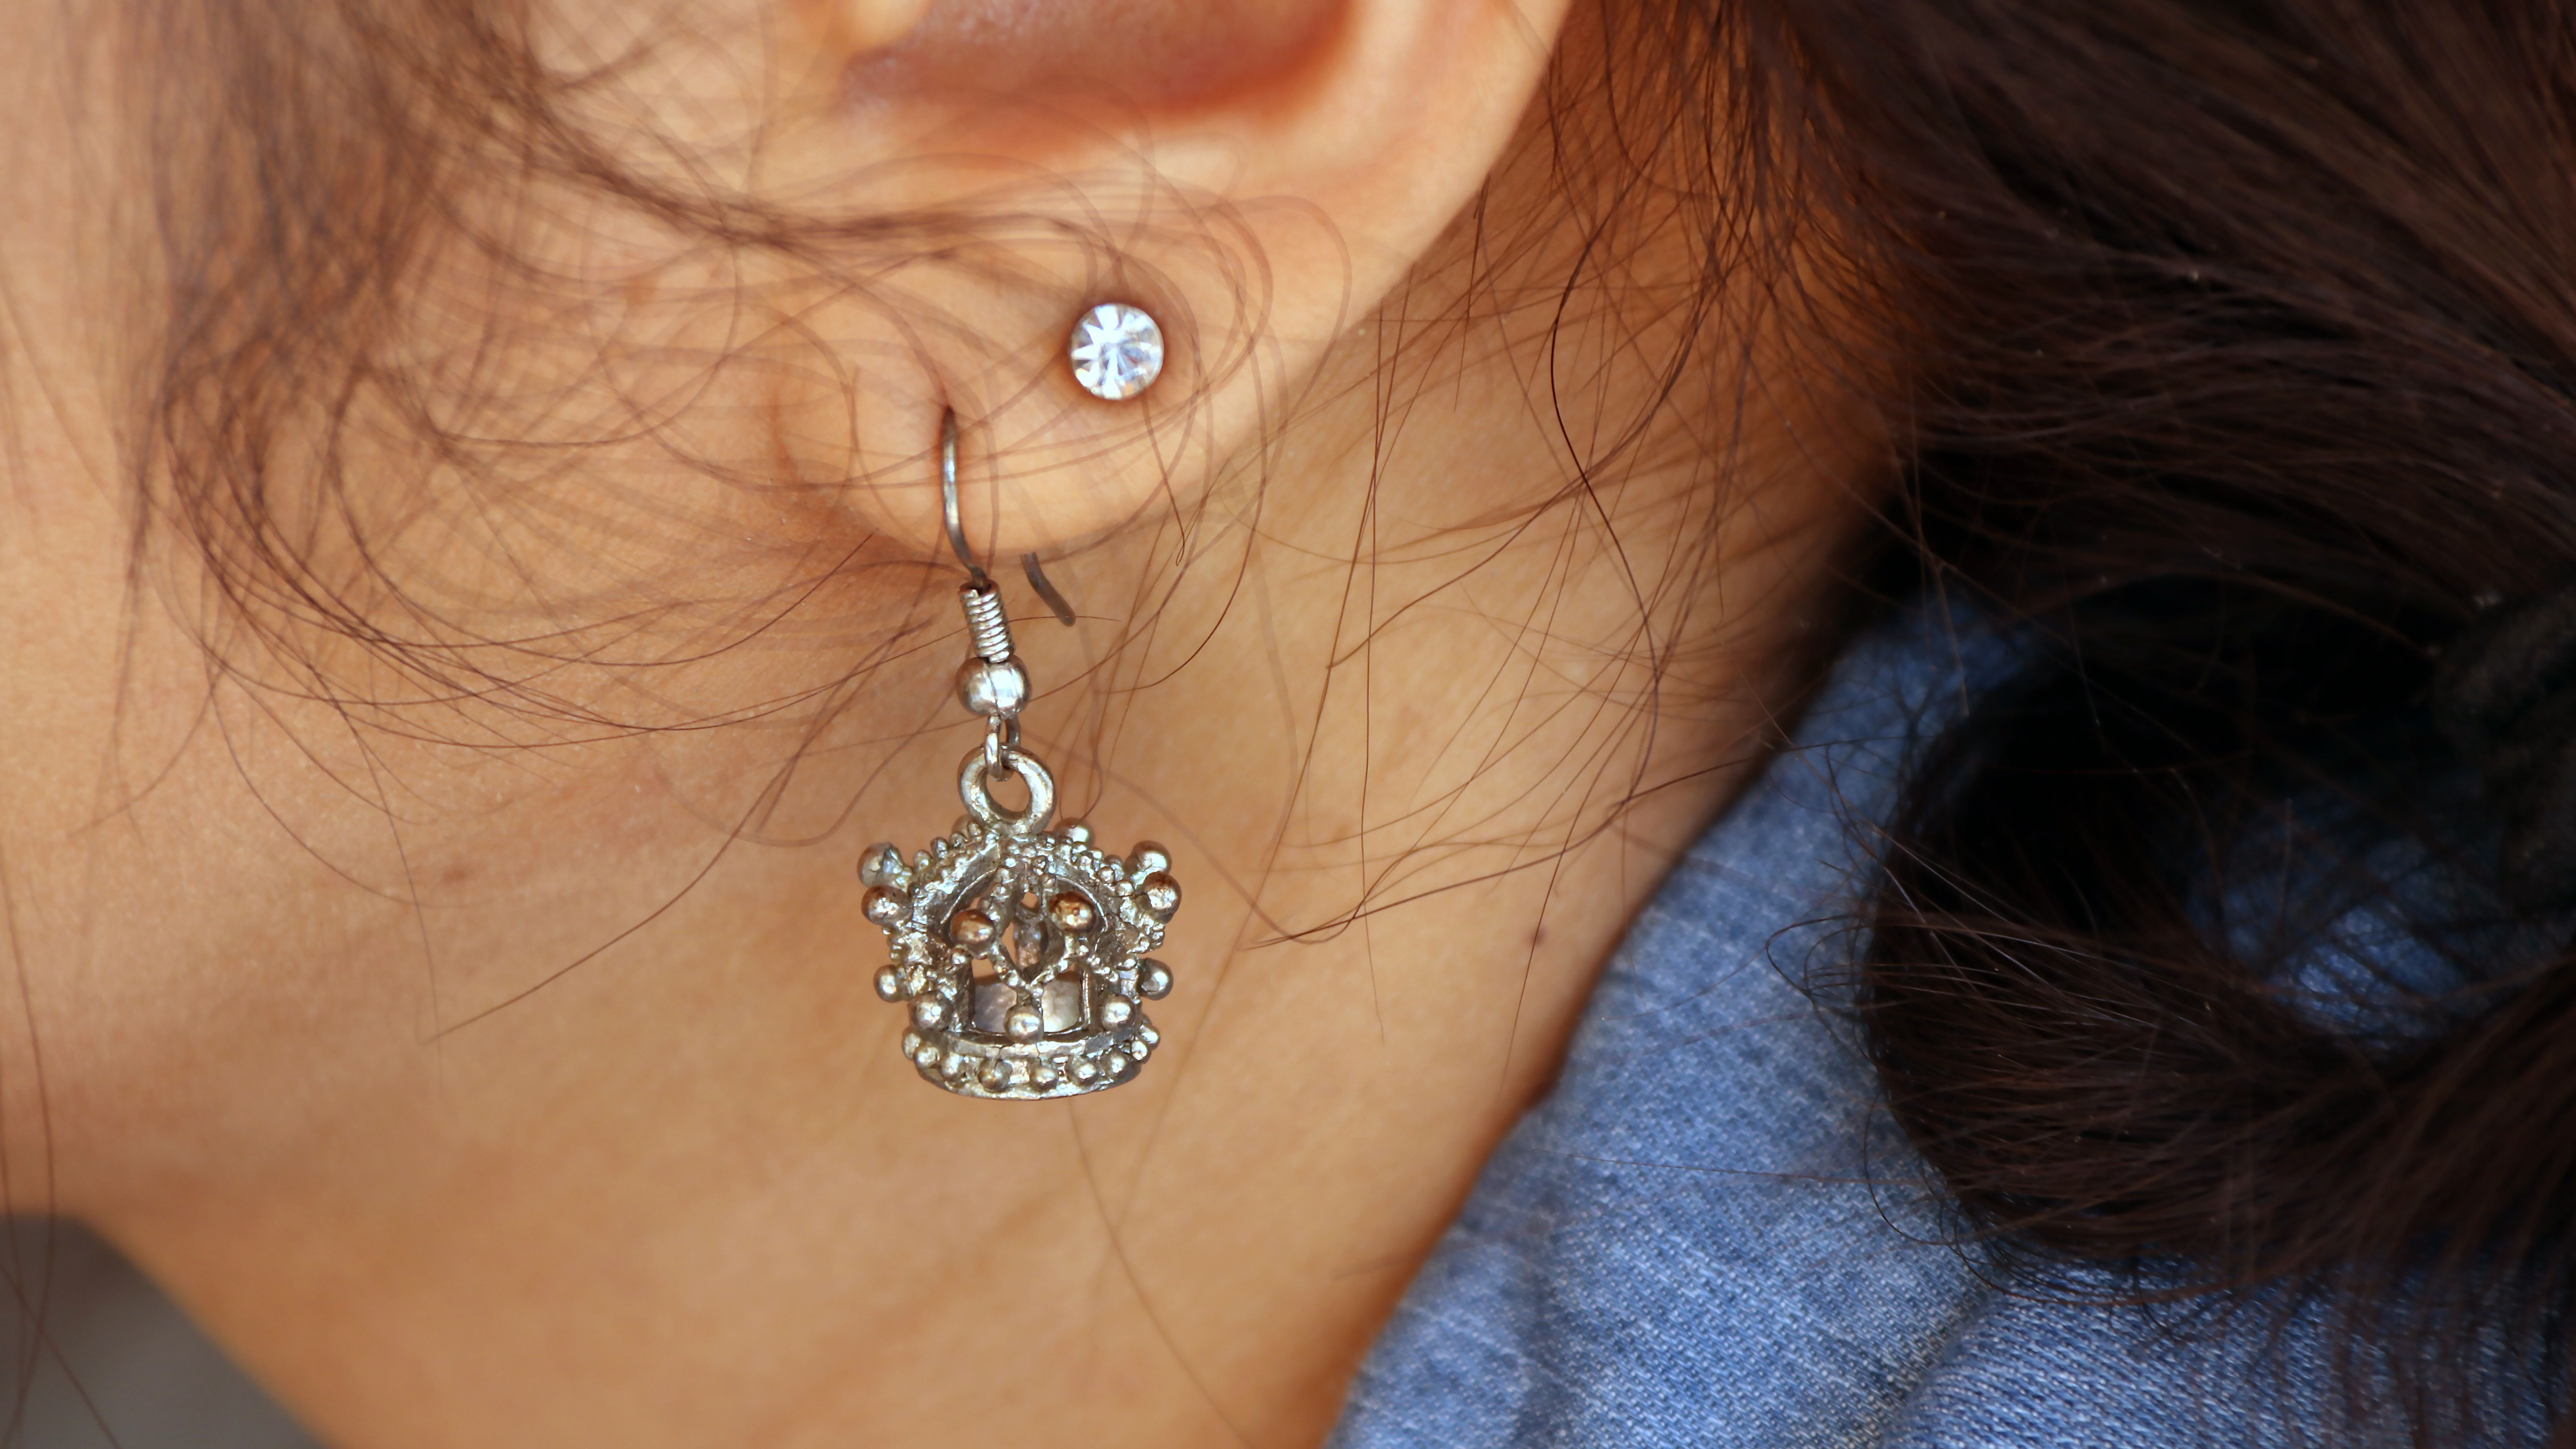 What To Know Before You Get Your Ears Pierced